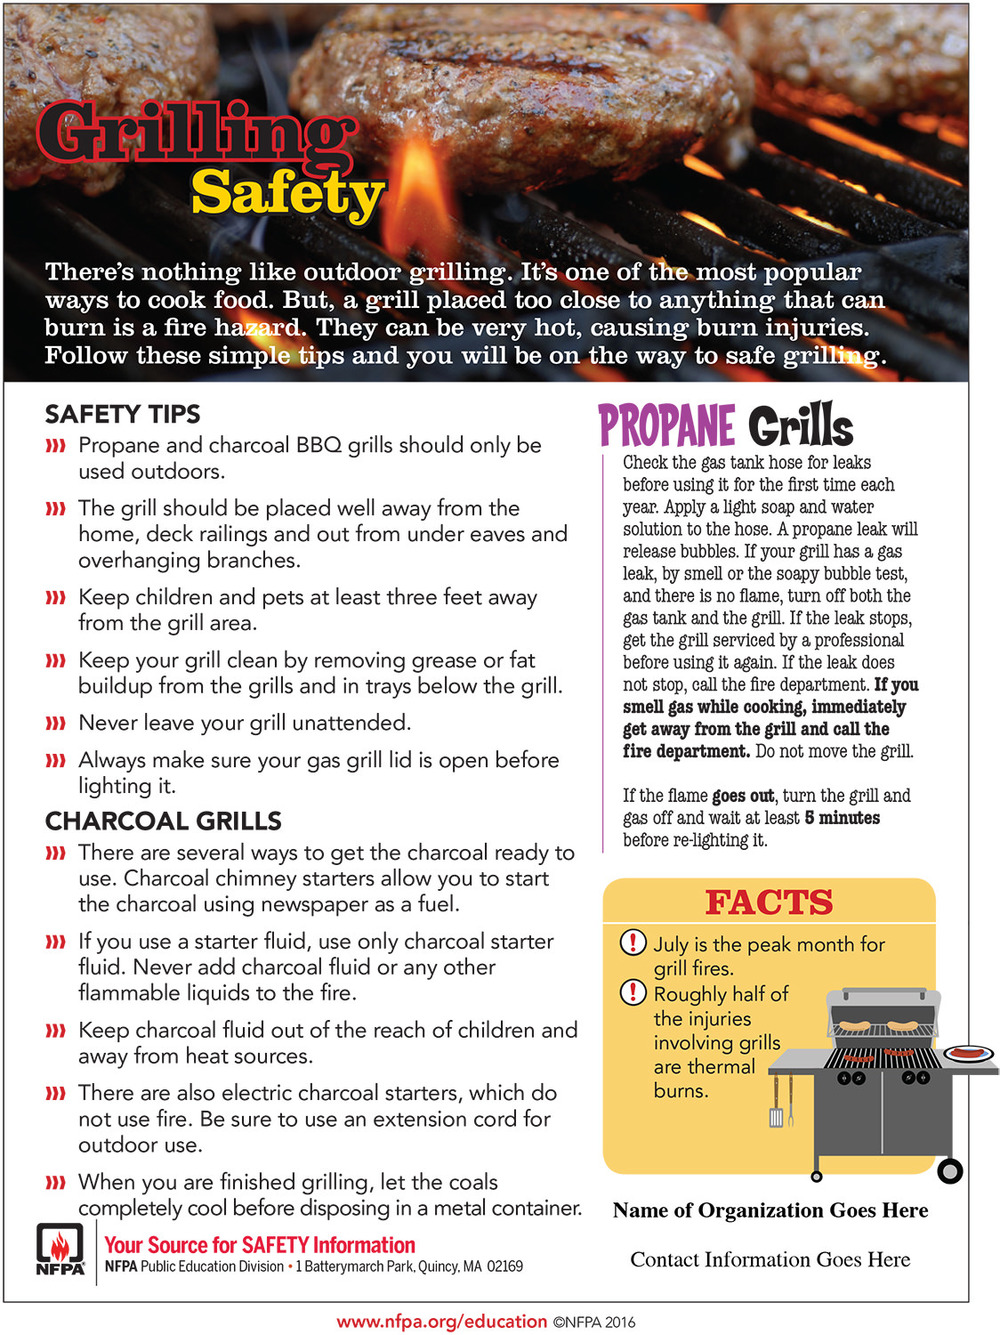 nfpa-grilling-safety-tips.jpg